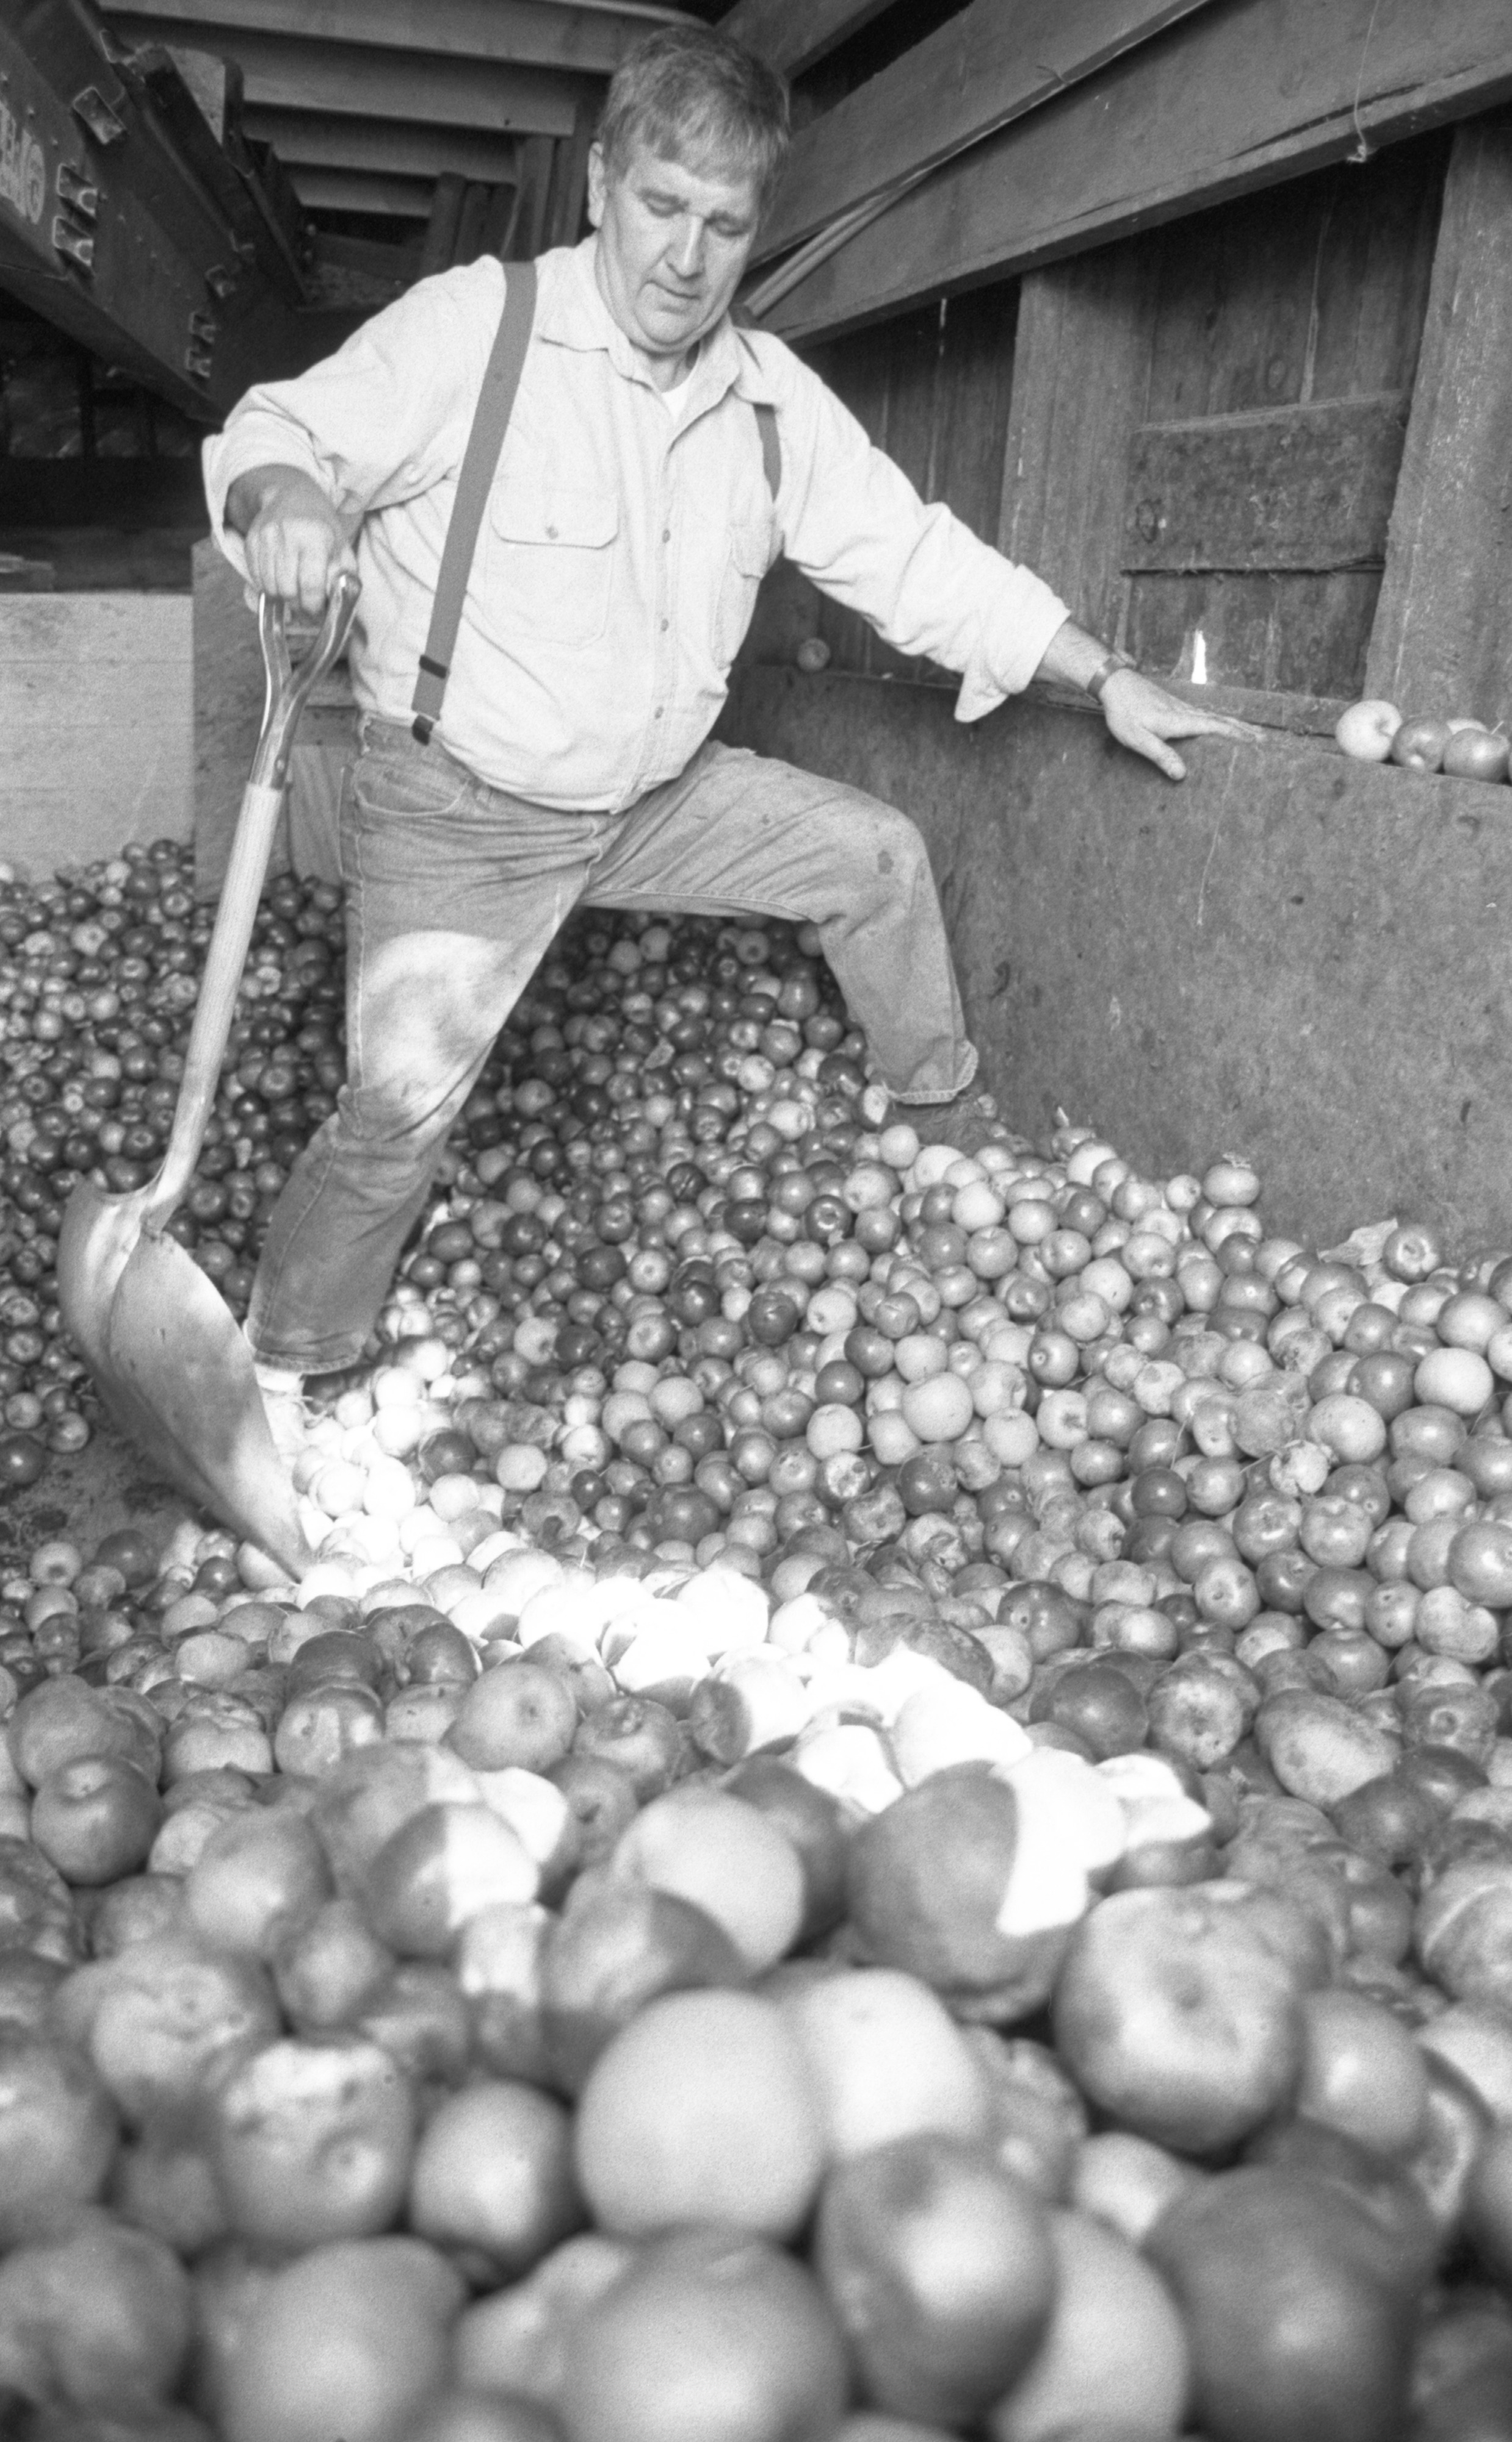 Richard Koziski Prepares Apples For Pressing - Dexter Cider Mill, October 1988 image